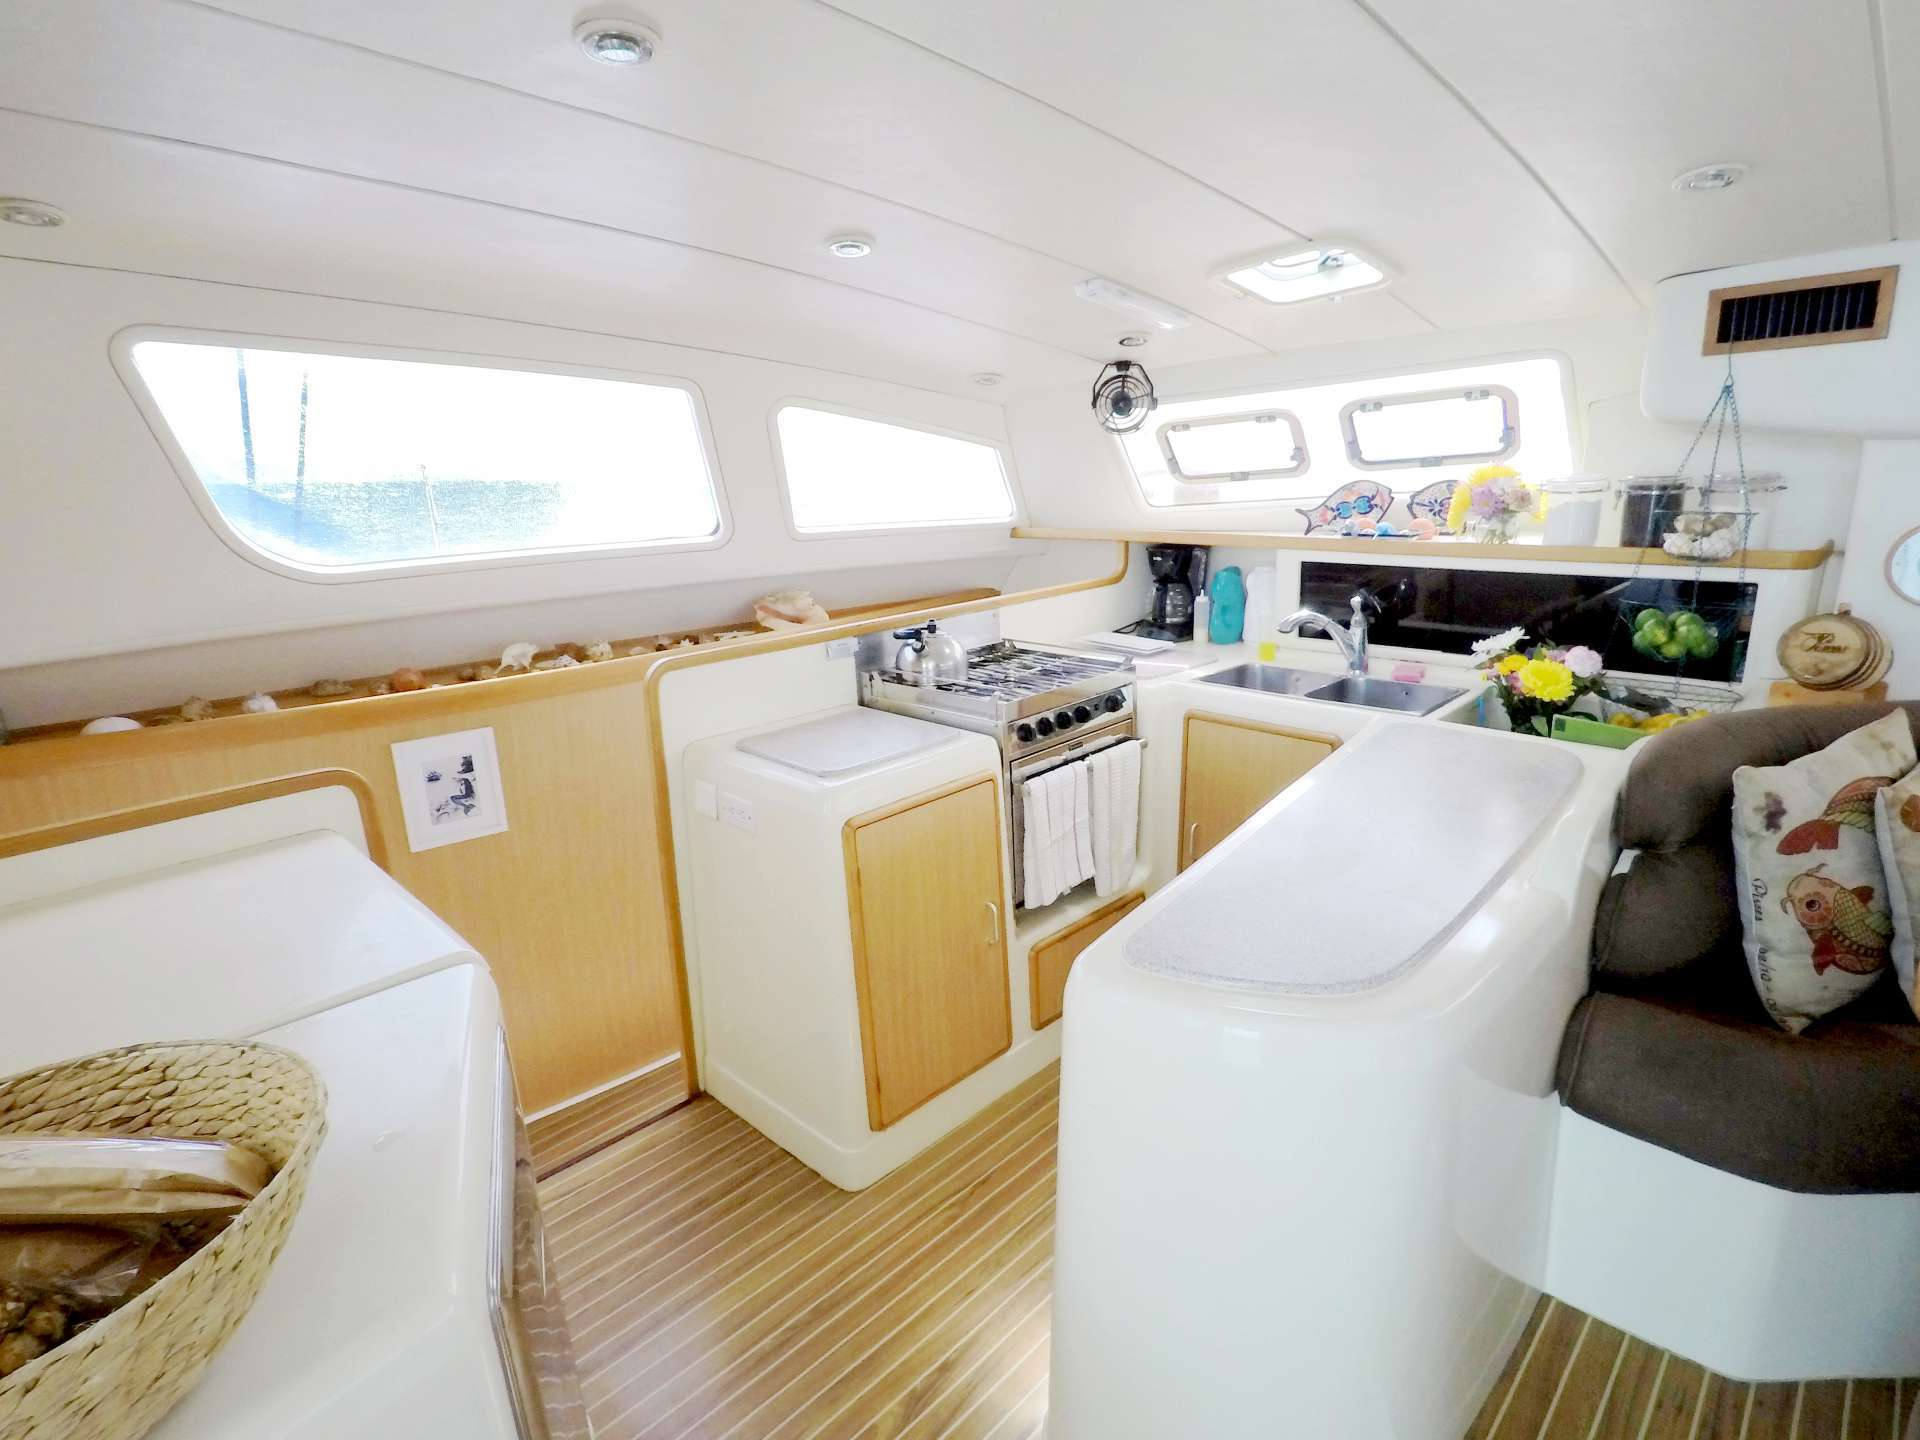 Interior galley has all the room and amenities for five-star cuisine